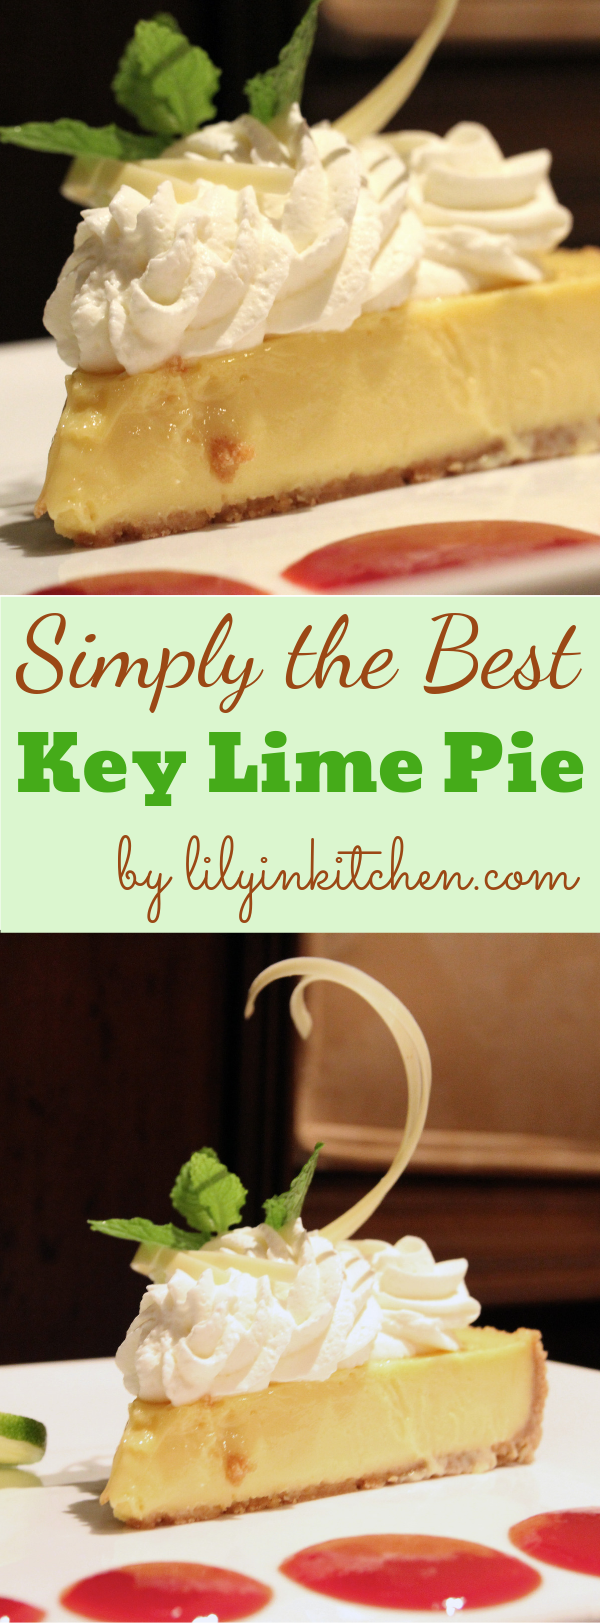 Simply the Best Key Lime Pie Recipe I have found! This recipe is so delicious, easy summer dessert with only a few, simple ingredients and is like a little taste of tropical paradise!   This quick and easy key lime pie is a family favorite dessert! #instantpot #keylime #keylimepie #pie #dessert #instantpotdessert